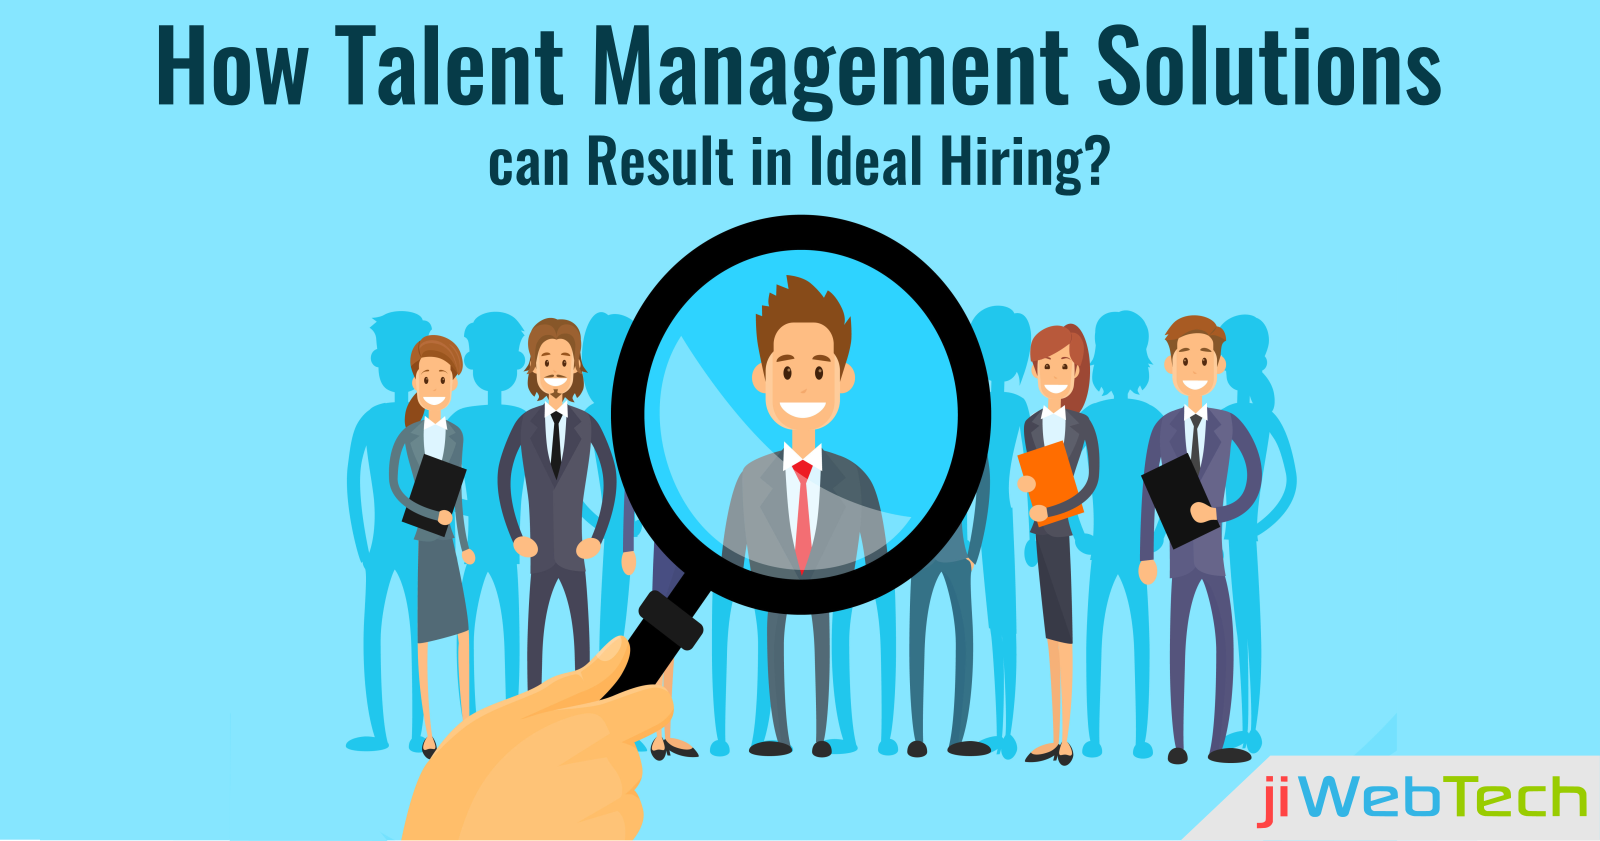 How Talent Management Solutions can Result in Ideal Hiring